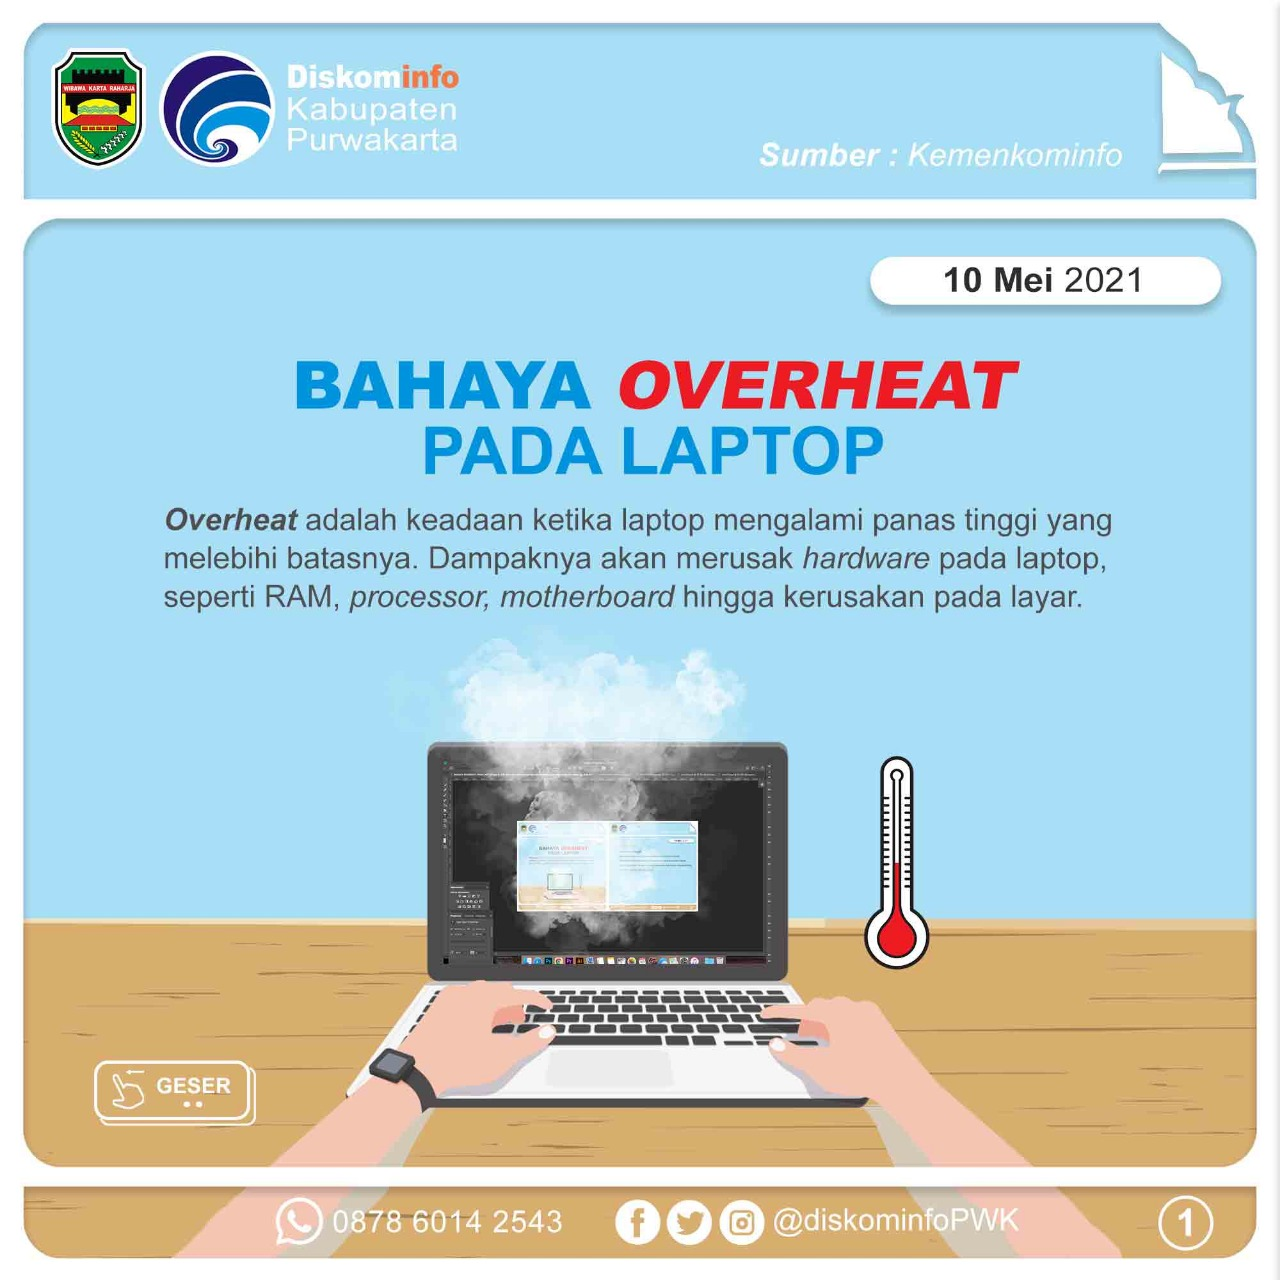 Bahaya Overheat Pada Laptop